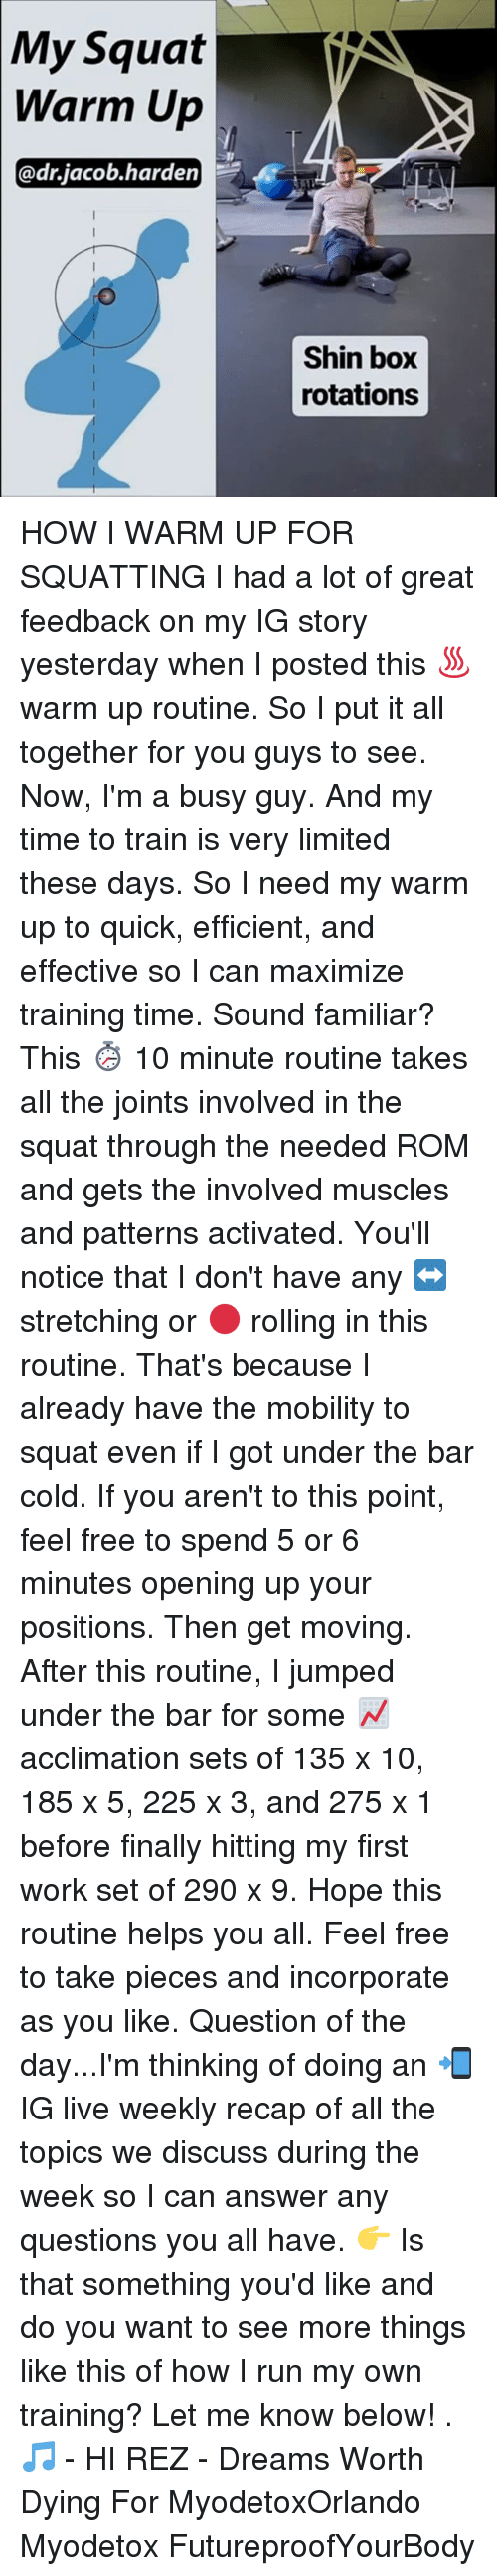 Memes, 🤖, and Answers: My Squat  V  Warm Up  adr jacob harden  Shin box  rotations HOW I WARM UP FOR SQUATTING I had a lot of great feedback on my IG story yesterday when I posted this ♨ warm up routine. So I put it all together for you guys to see. Now, I'm a busy guy. And my time to train is very limited these days. So I need my warm up to quick, efficient, and effective so I can maximize training time. Sound familiar? This ⏱ 10 minute routine takes all the joints involved in the squat through the needed ROM and gets the involved muscles and patterns activated. You'll notice that I don't have any ↔ stretching or 🔴 rolling in this routine. That's because I already have the mobility to squat even if I got under the bar cold. If you aren't to this point, feel free to spend 5 or 6 minutes opening up your positions. Then get moving. After this routine, I jumped under the bar for some 📈 acclimation sets of 135 x 10, 185 x 5, 225 x 3, and 275 x 1 before finally hitting my first work set of 290 x 9. Hope this routine helps you all. Feel free to take pieces and incorporate as you like. Question of the day...I'm thinking of doing an 📲 IG live weekly recap of all the topics we discuss during the week so I can answer any questions you all have. 👉 Is that something you'd like and do you want to see more things like this of how I run my own training? Let me know below! . 🎵 - HI REZ - Dreams Worth Dying For MyodetoxOrlando Myodetox FutureproofYourBody